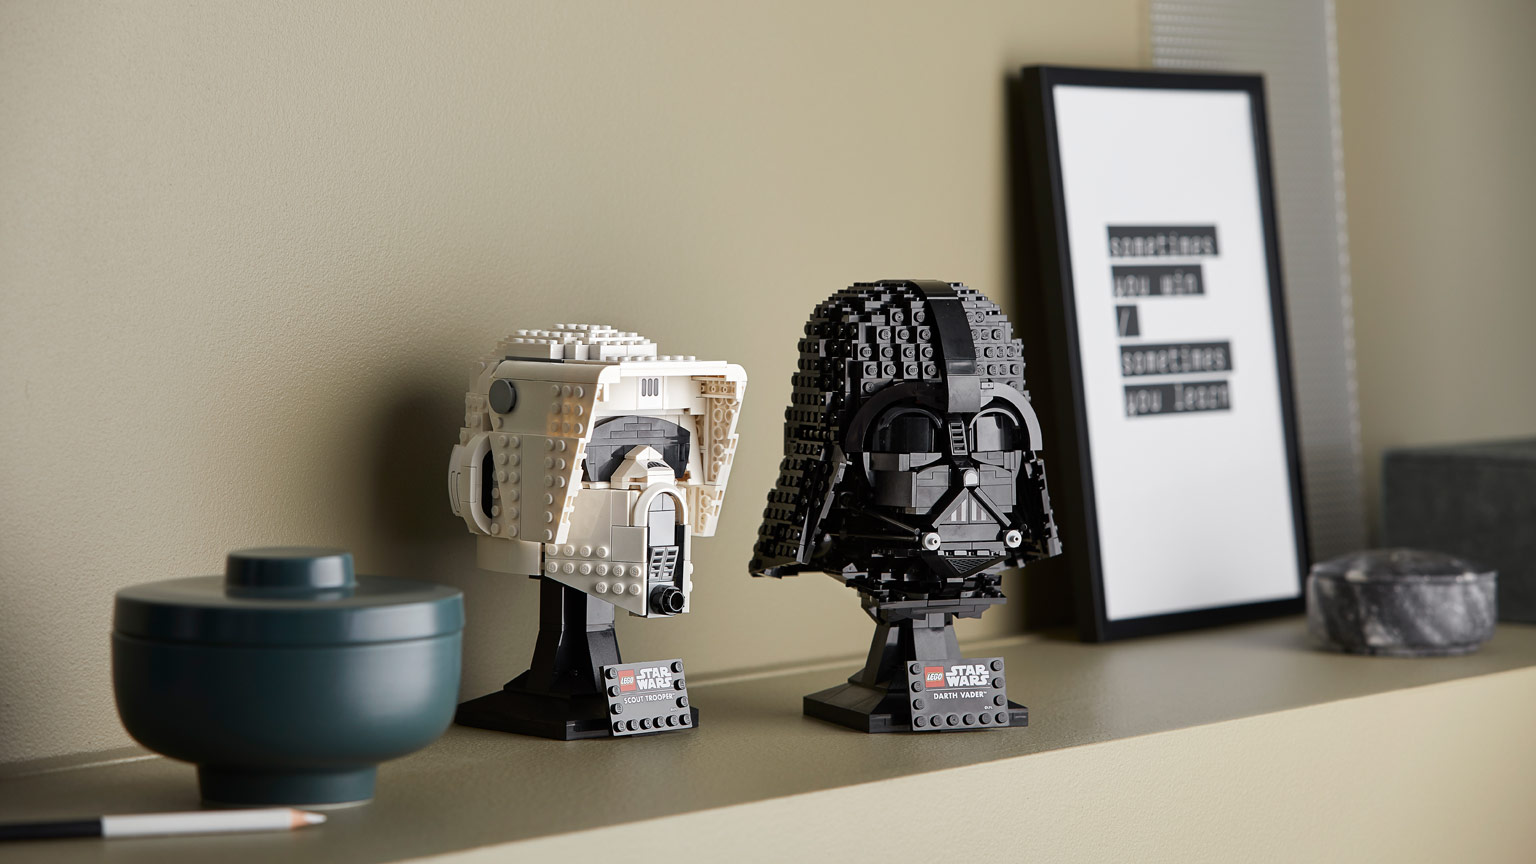 LEGO Star Wars Scout Trooper and Darth Vader helmets